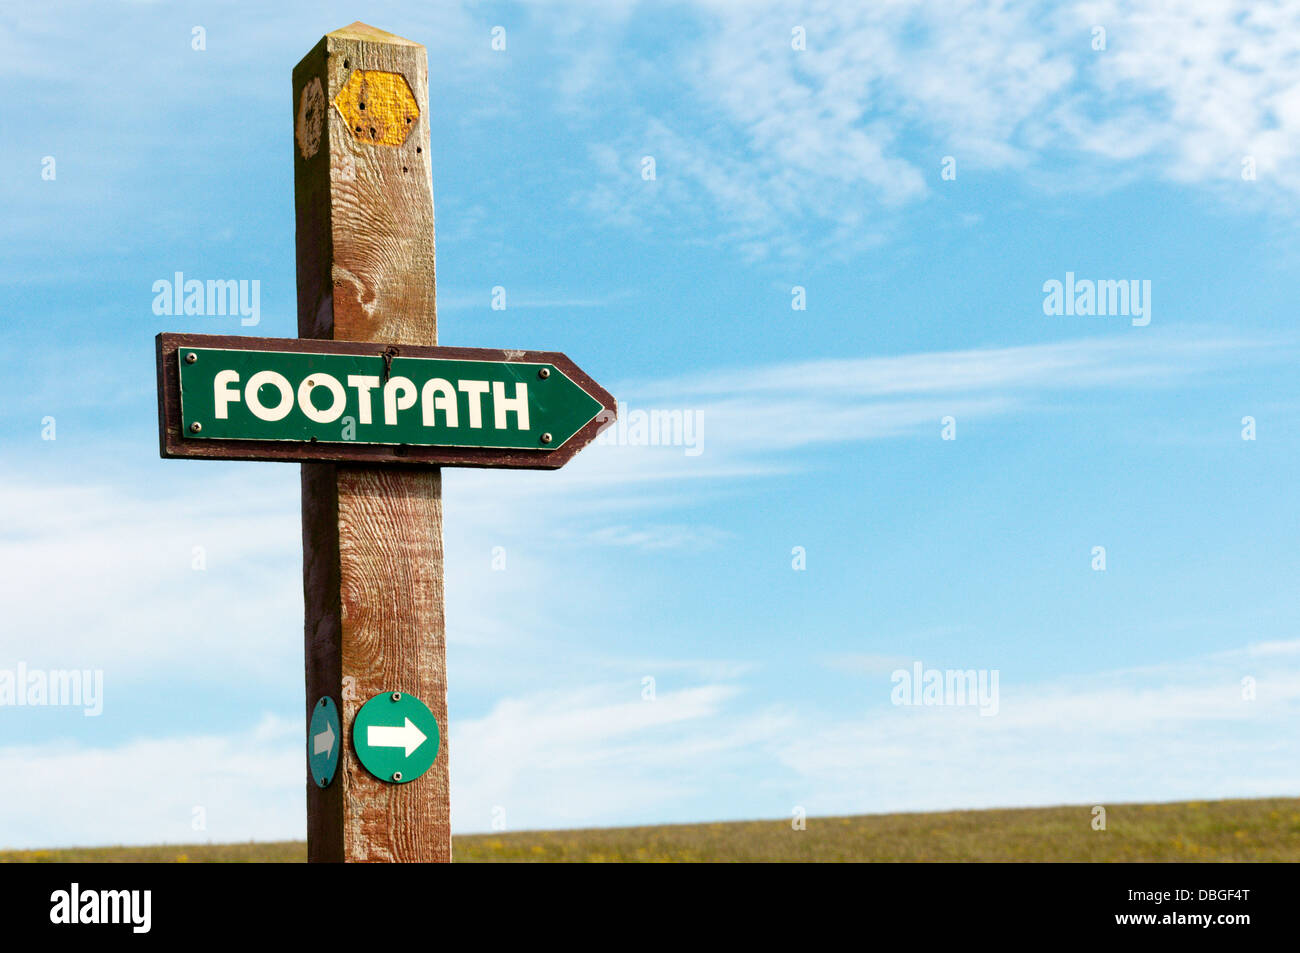 A footpath direction sign in the countryside. Stock Photo